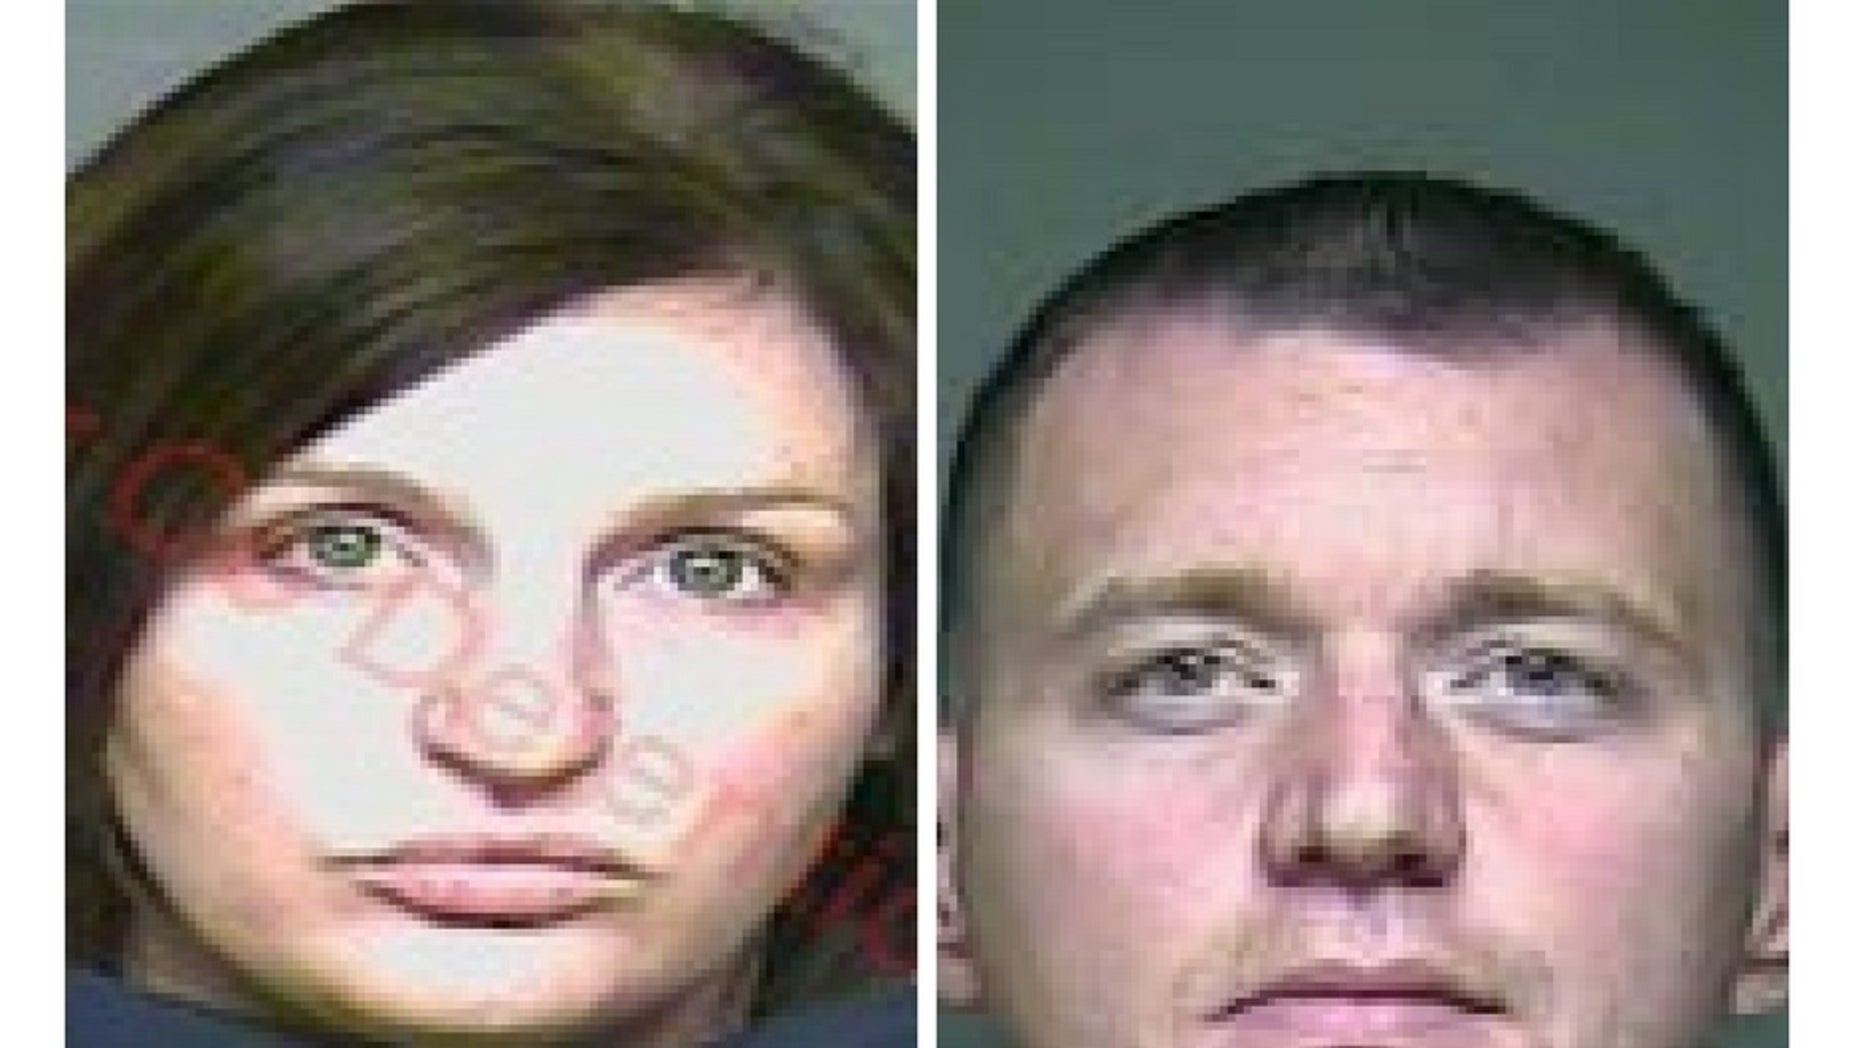 Katherine Heckman has been accused of helping inmate Sean Lyles escape in order to have sex.